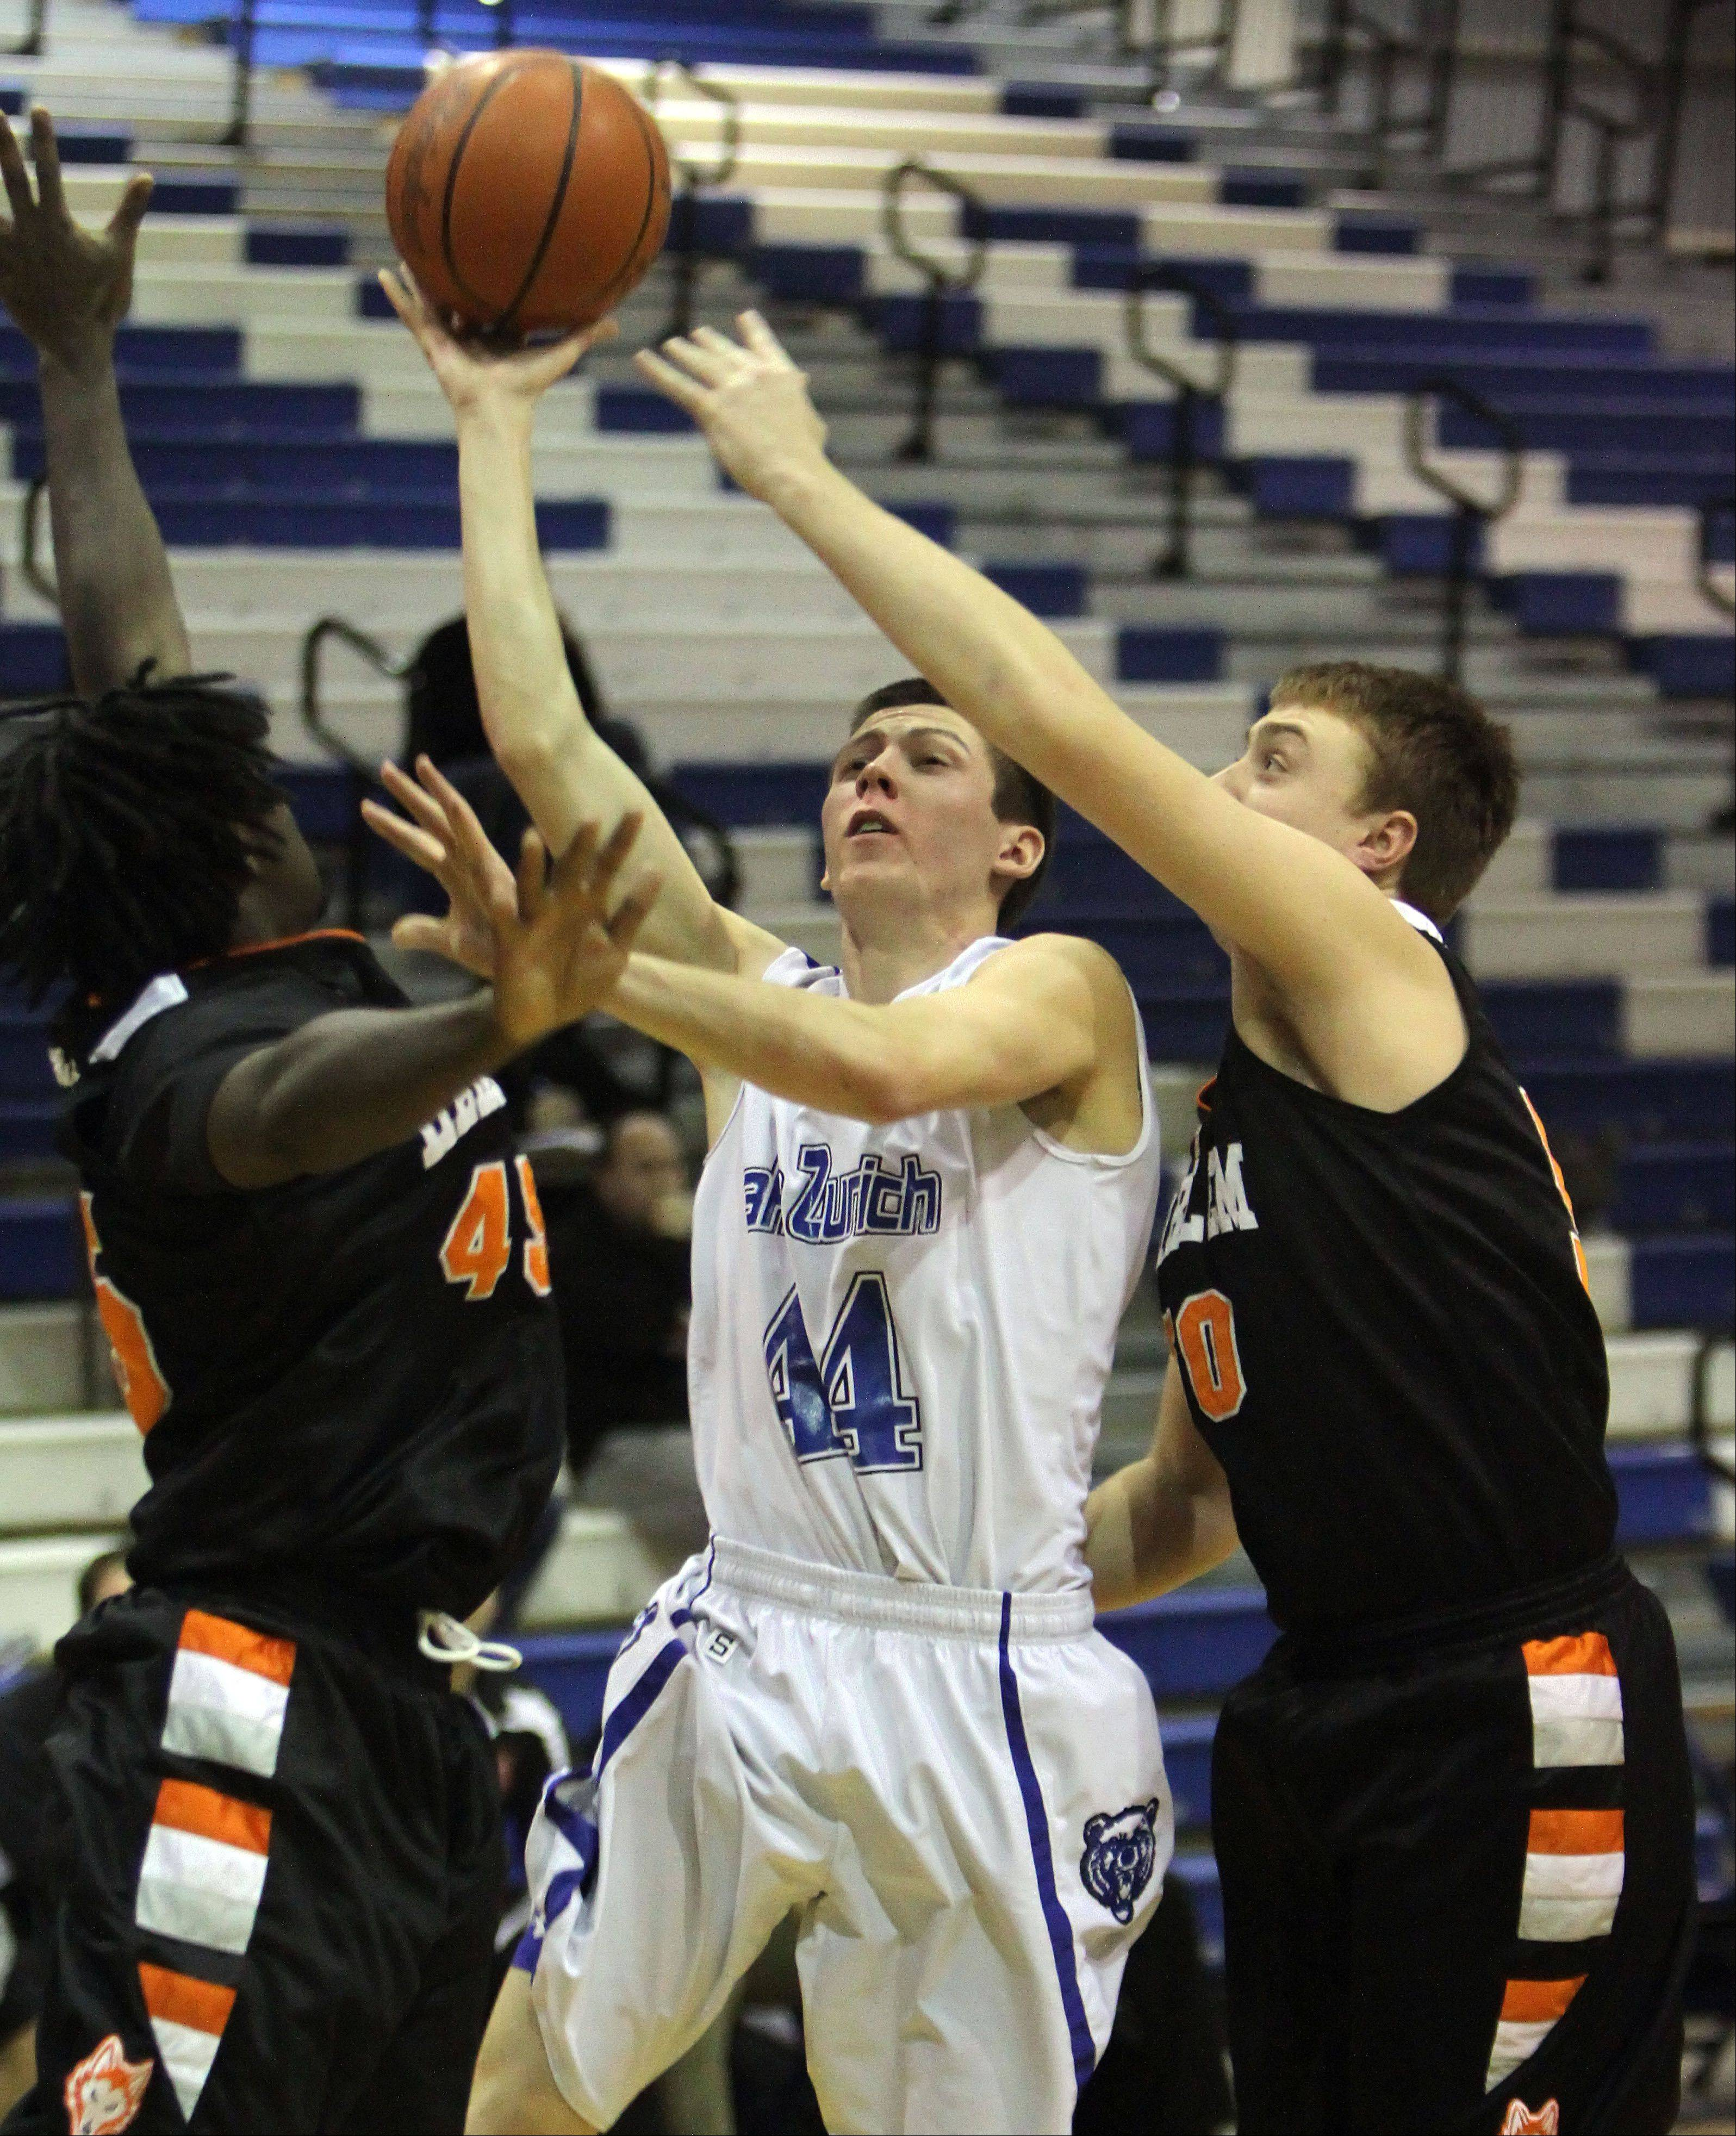 Repplinger, Lake Zurich on the rise